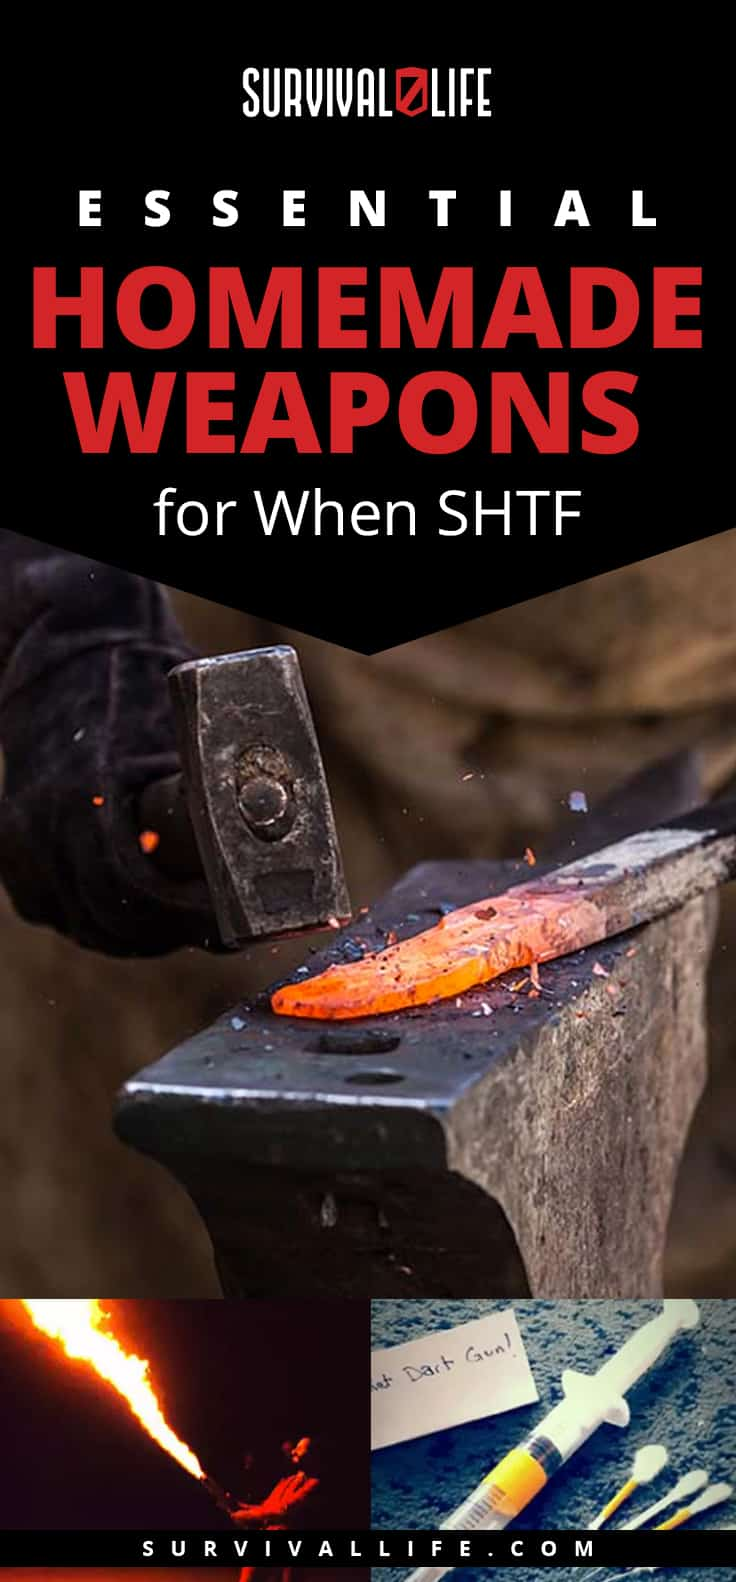 Essential Homemade Weapons | Essential Homemade Weapons for When SHTF